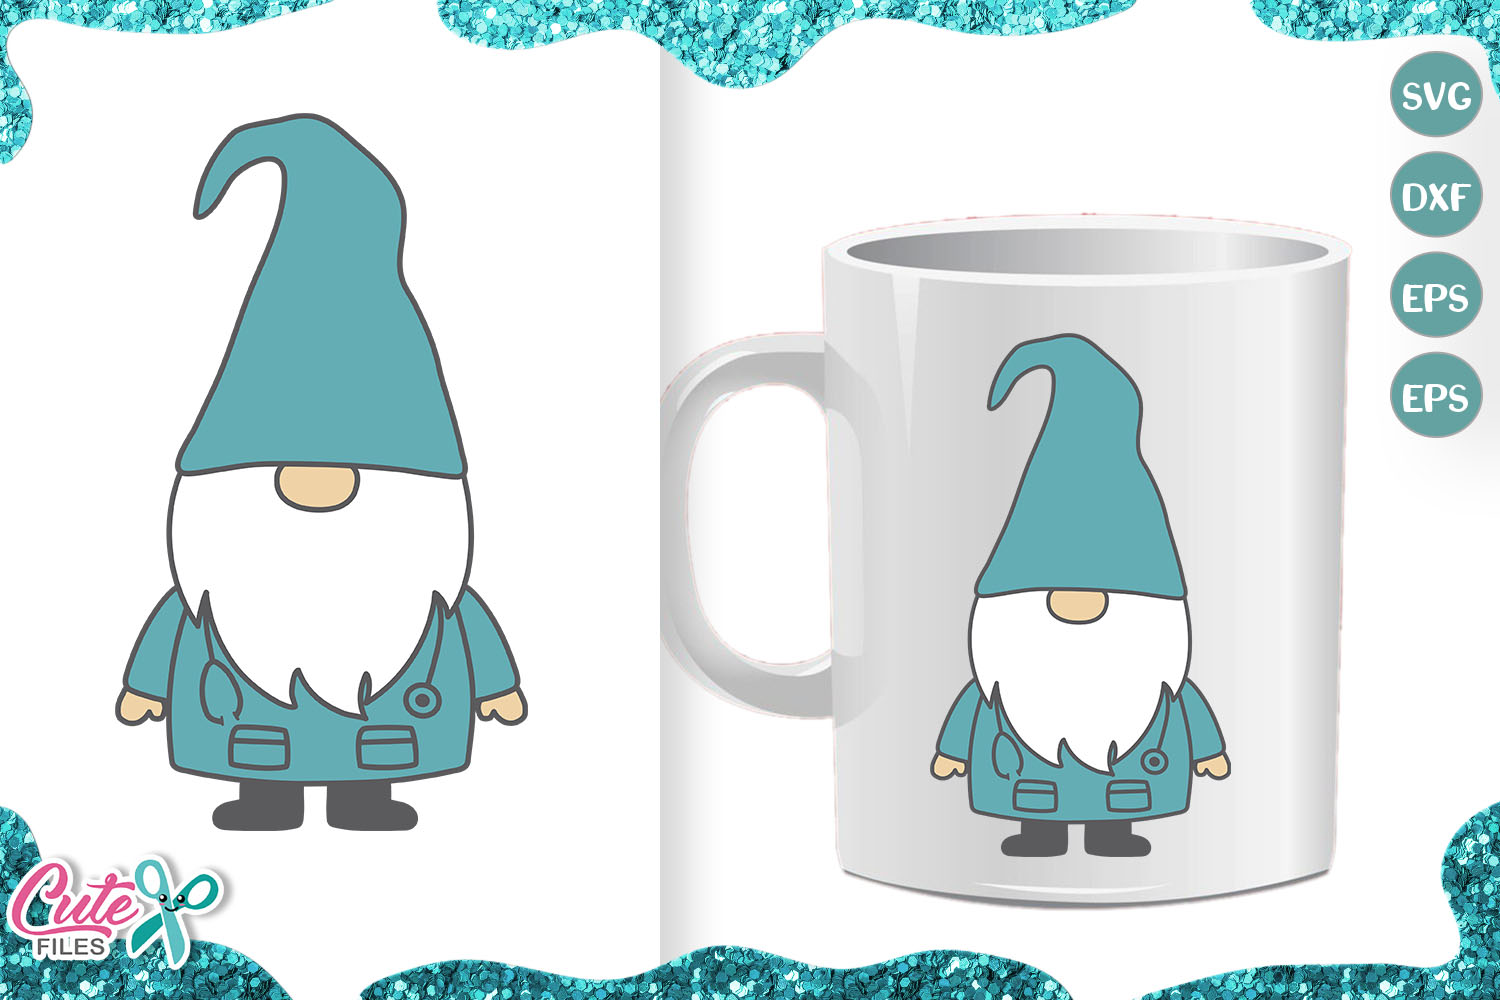 Download Free Nurse Gnome Medical Gnome Graphic By Cute Files Creative Fabrica for Cricut Explore, Silhouette and other cutting machines.